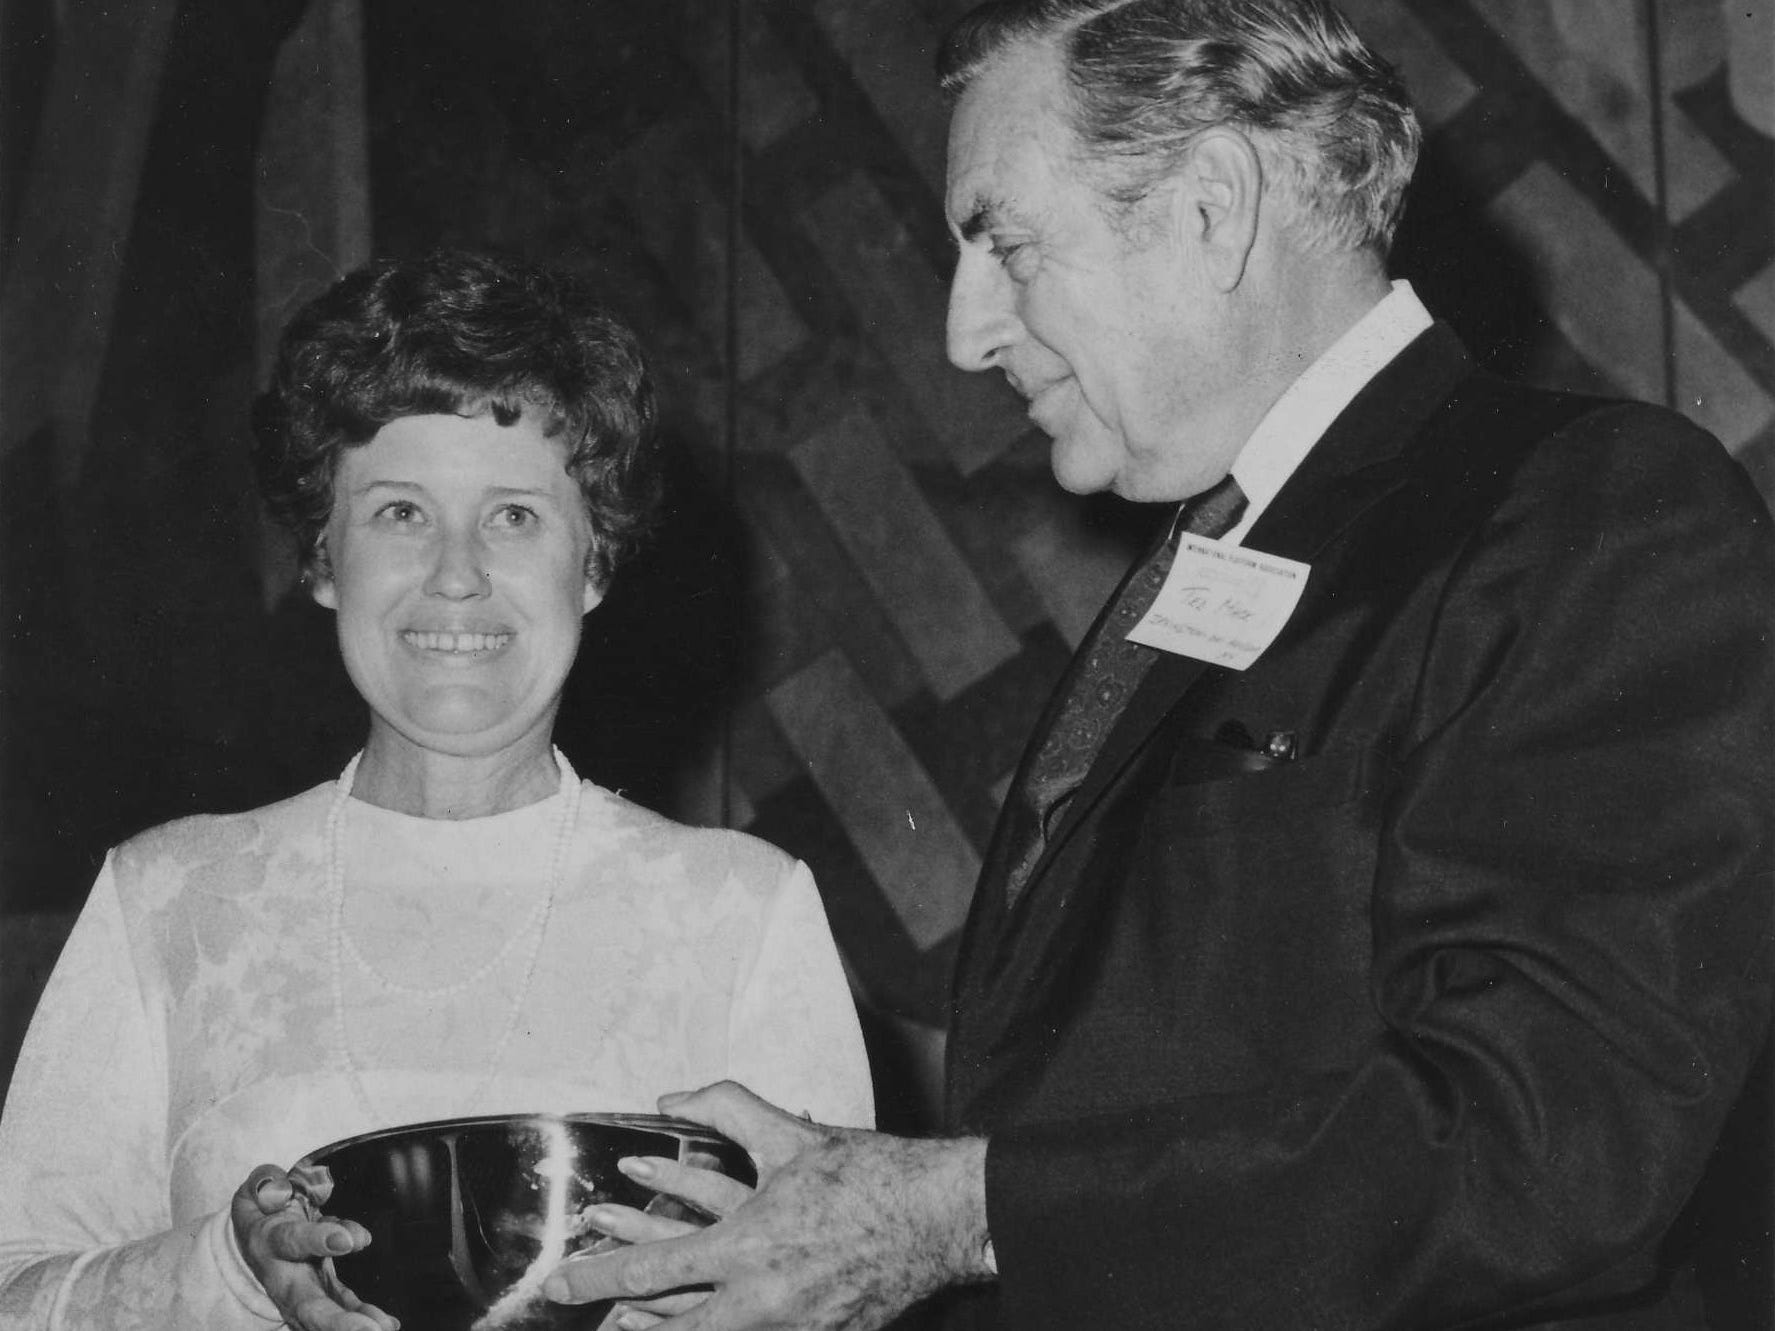 Erma Bombeck and Ted Mack in 1973.